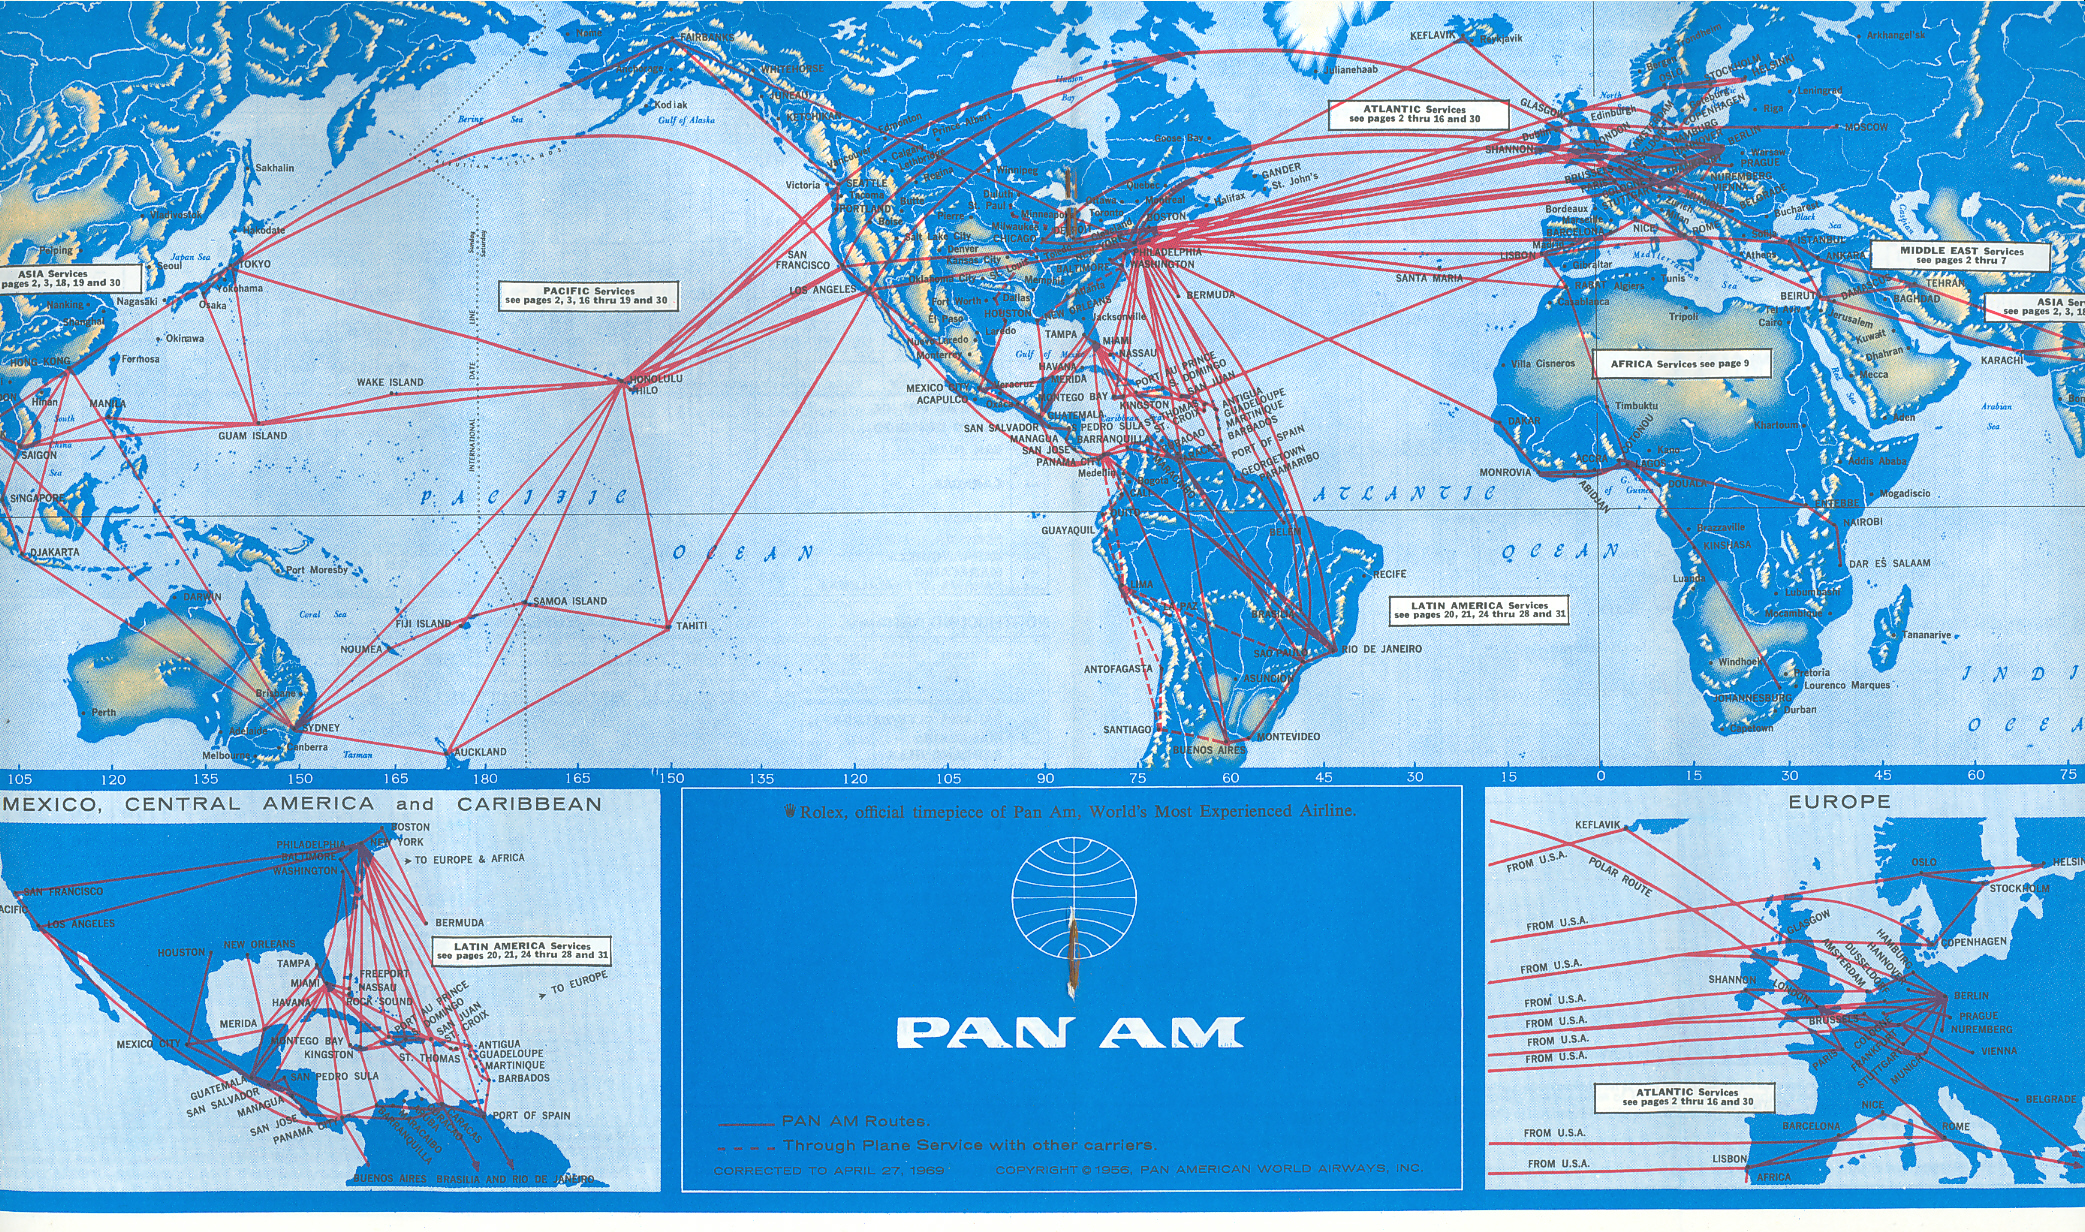 Pan Am World Airways Divisions Bases Hubs Pan Am World Docuproject - Us-airline-hubs-map